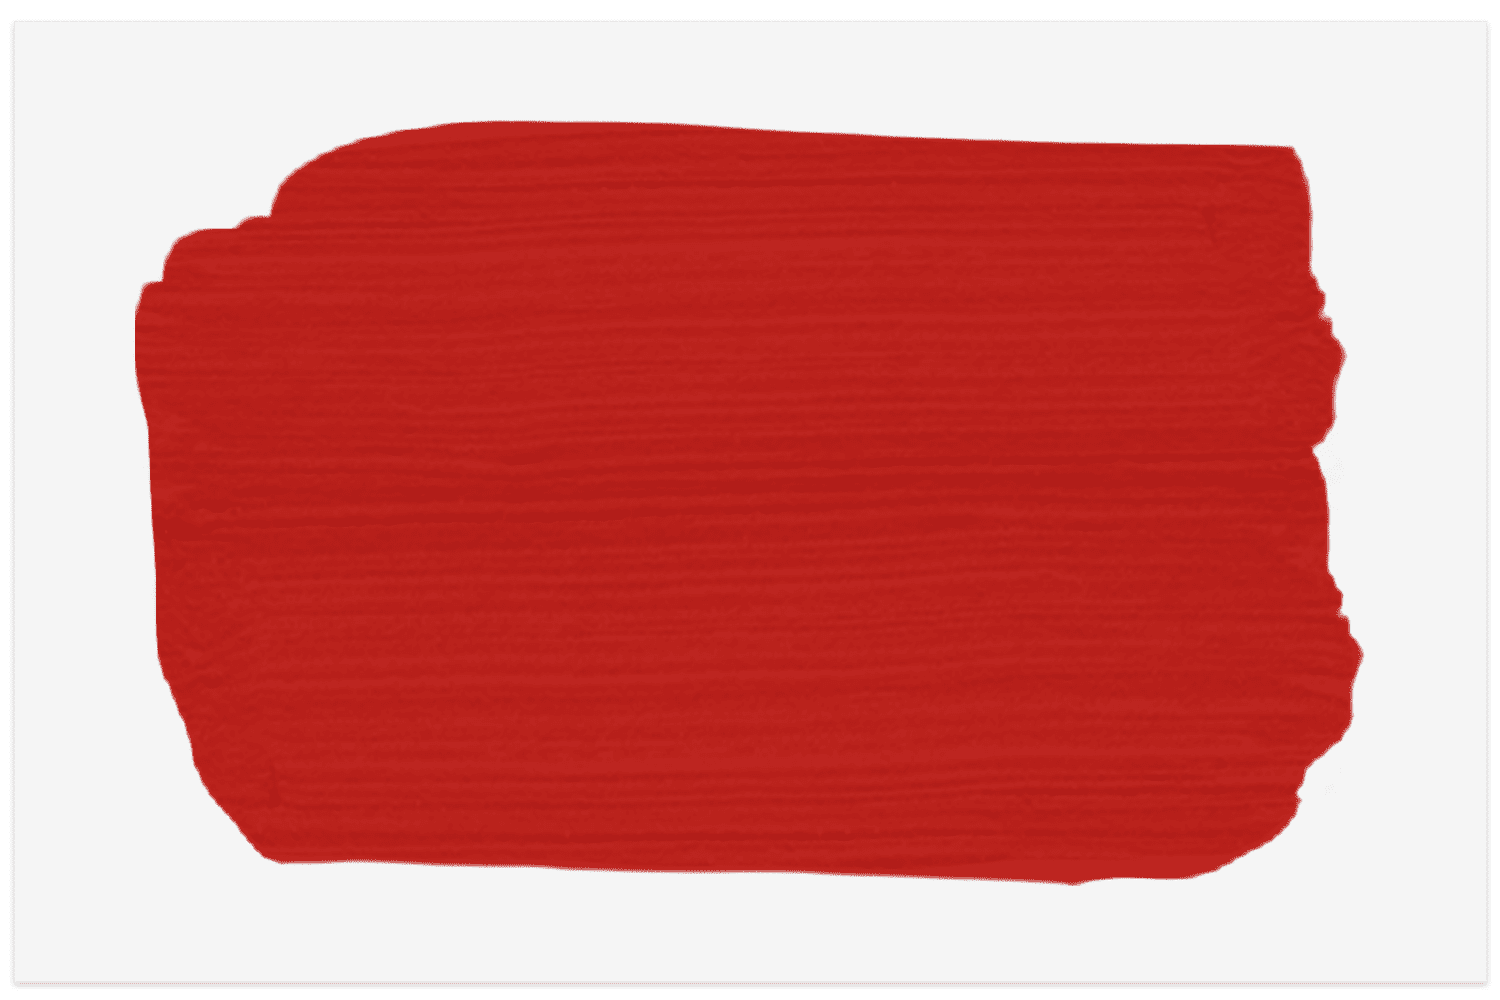 Swatch of Atomic Red by Little Greene